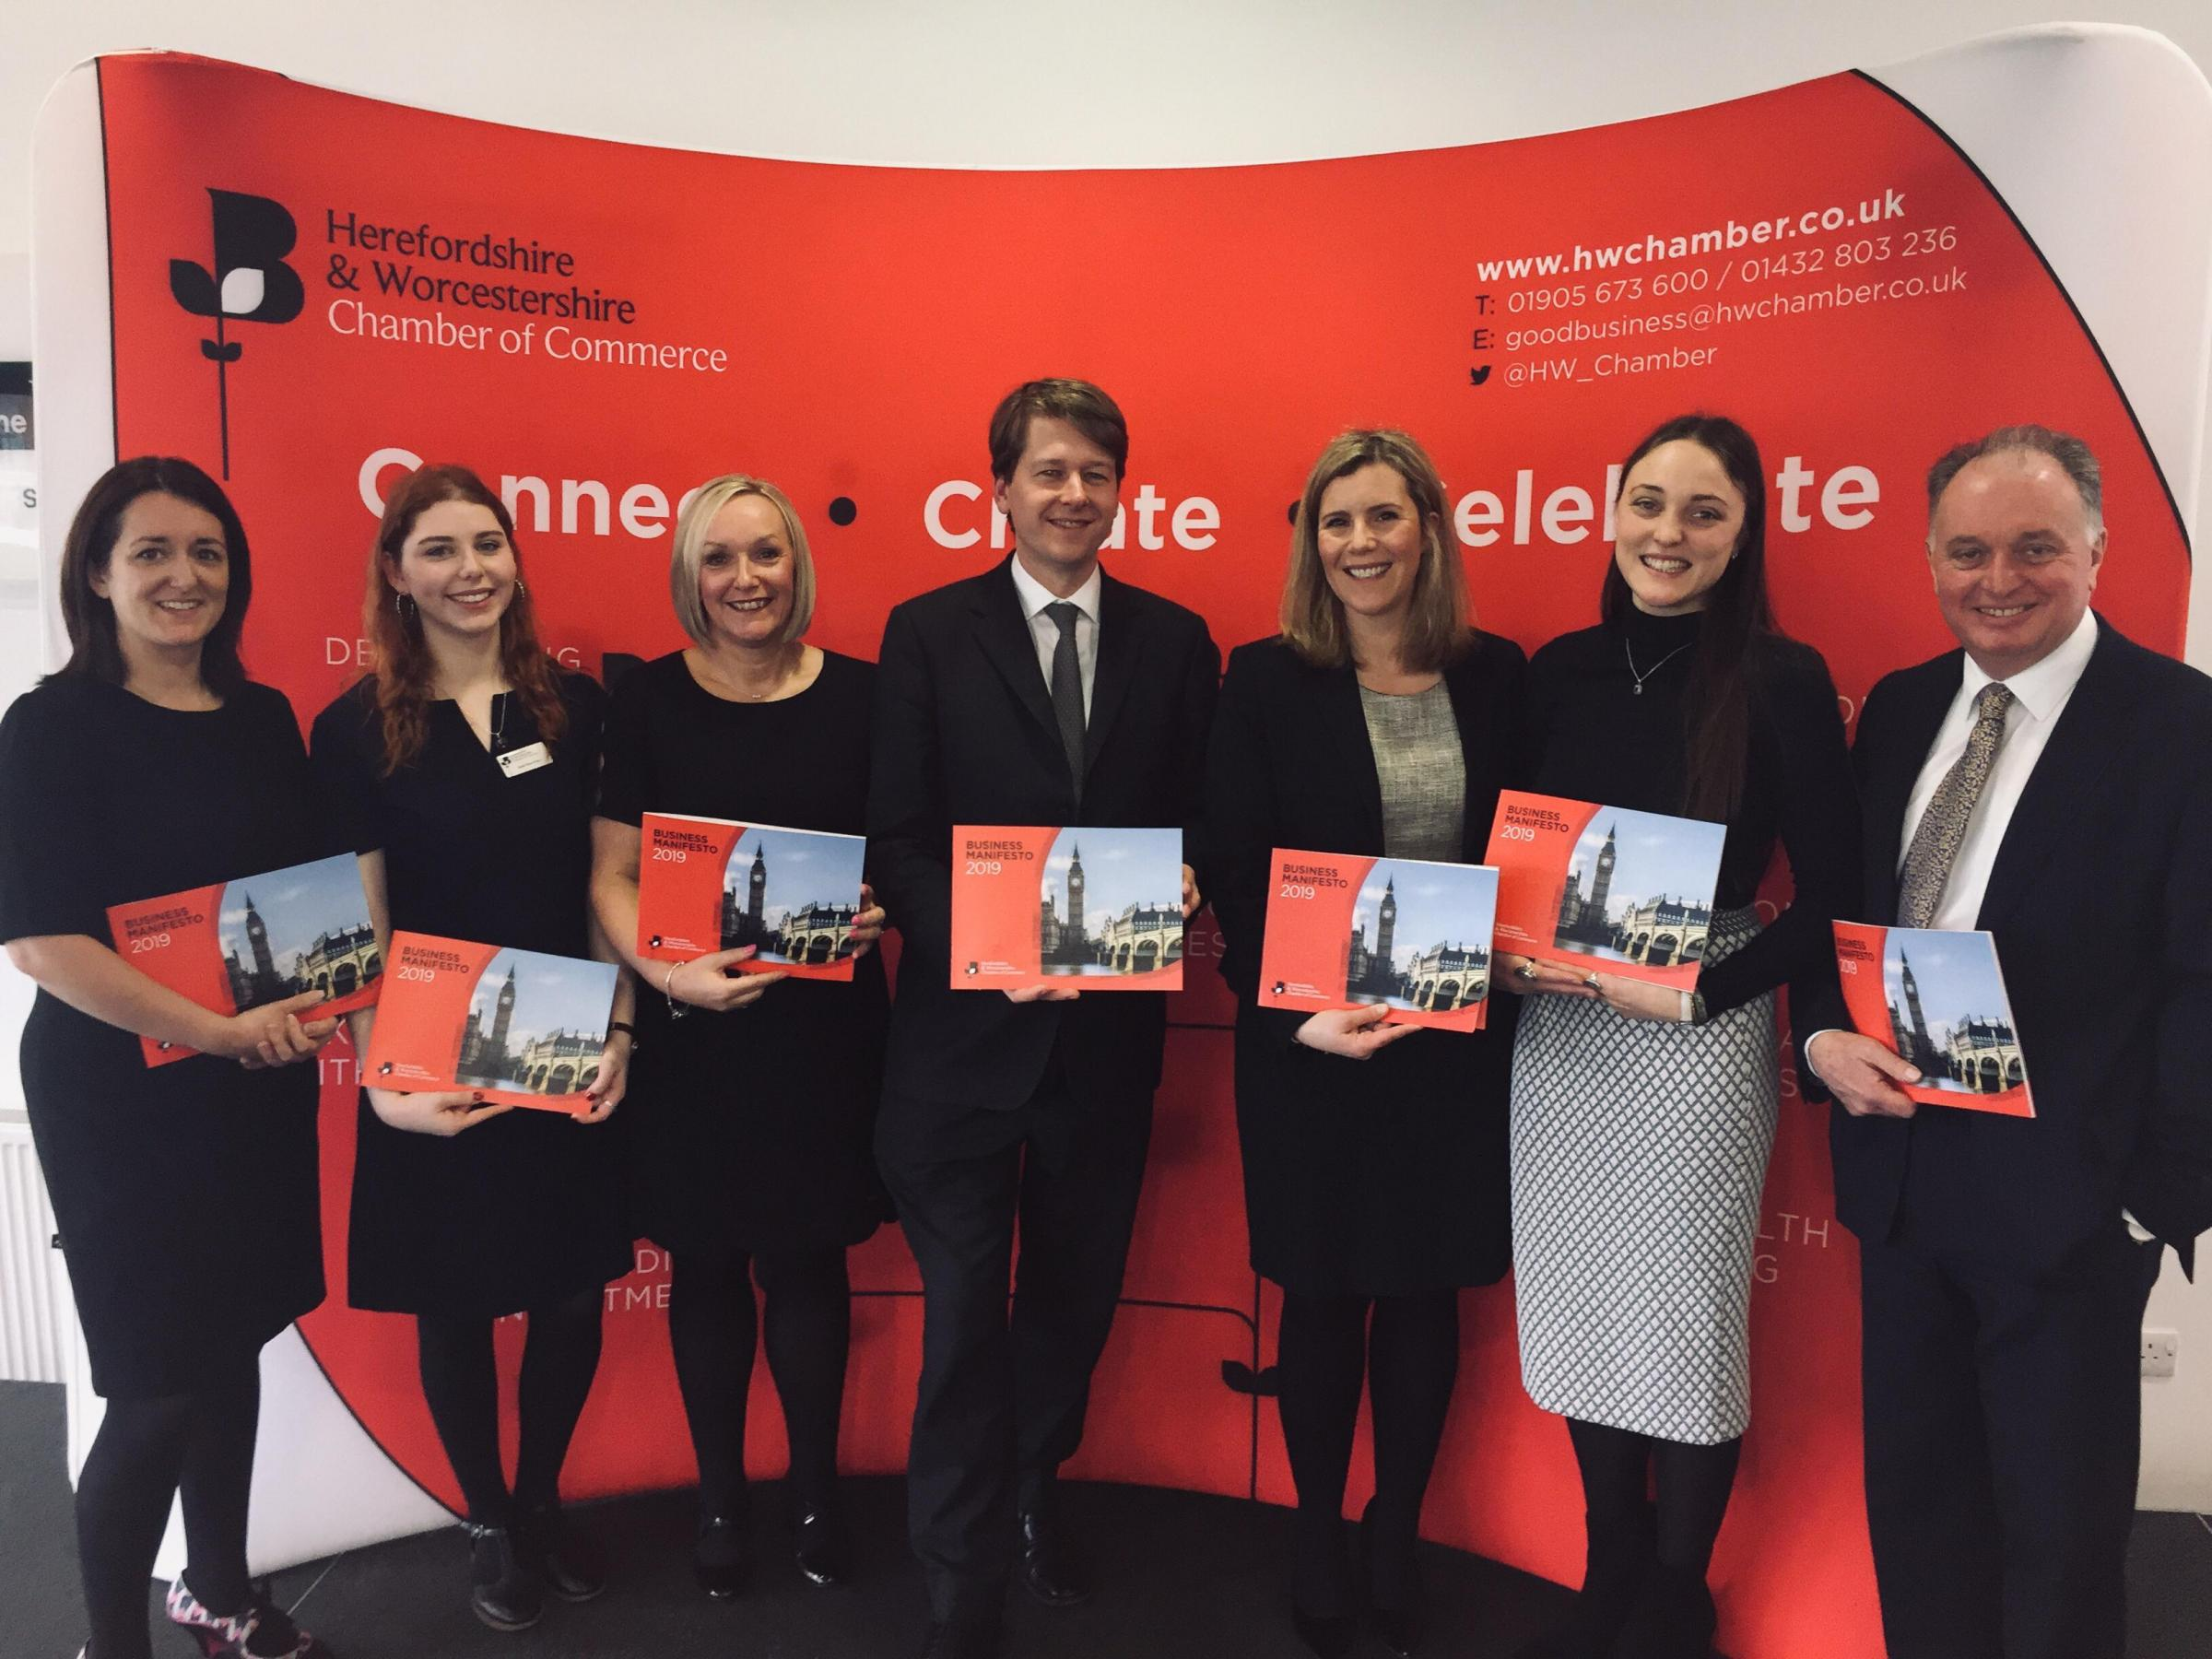 LAUNCH: (Left to right) Hannah Essex, Daisie Rees-Evans, Sharon Smith, Robin Walker, Cassie Bray, Poppy Bramford and Neil Schofield